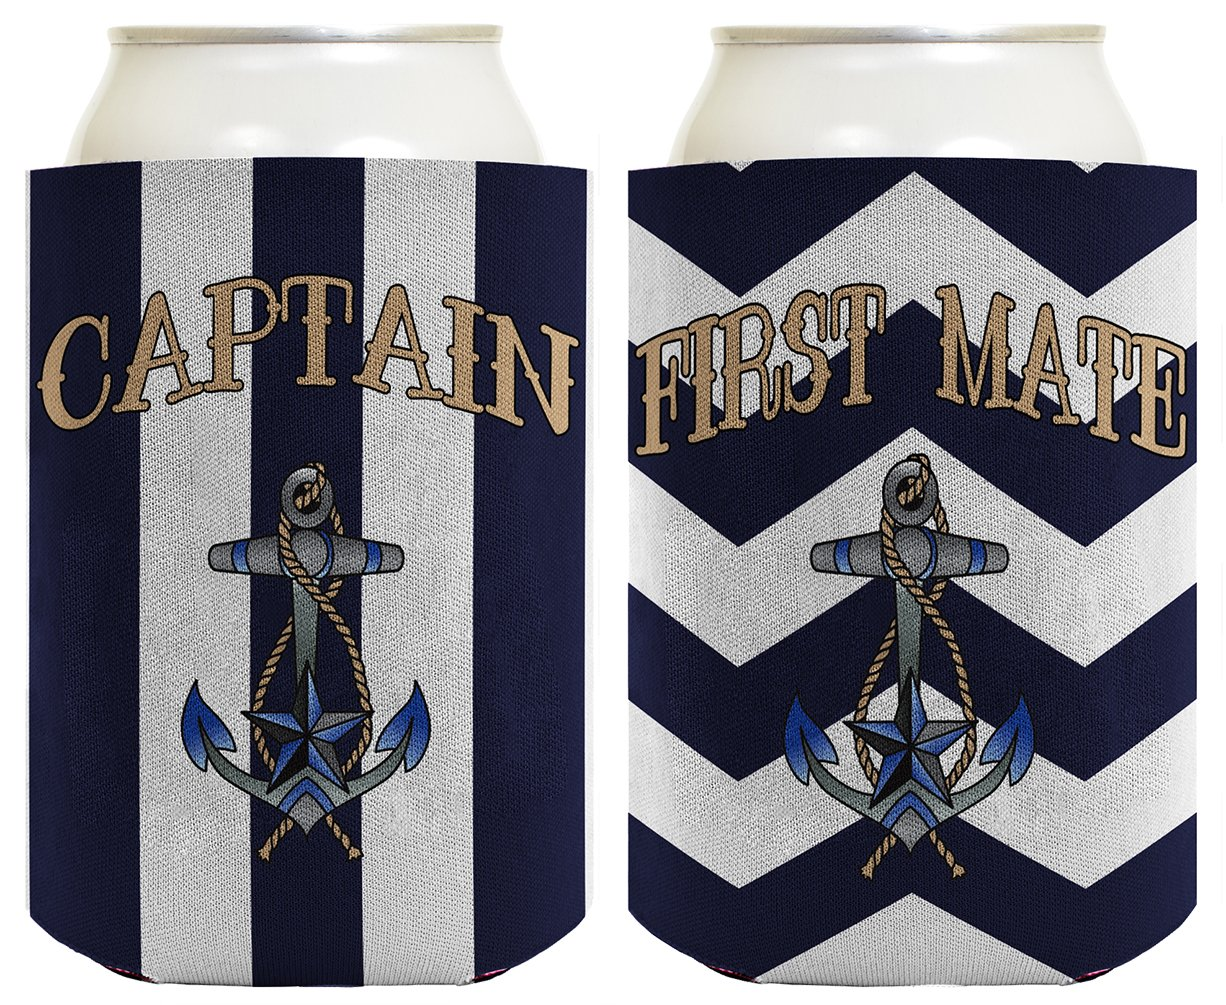 Captain Hat Yacht Cap Funny Coolie Captain and First Mate Chevron Can Coolie Bundle Chevron Navy by ThisWear (Image #3)